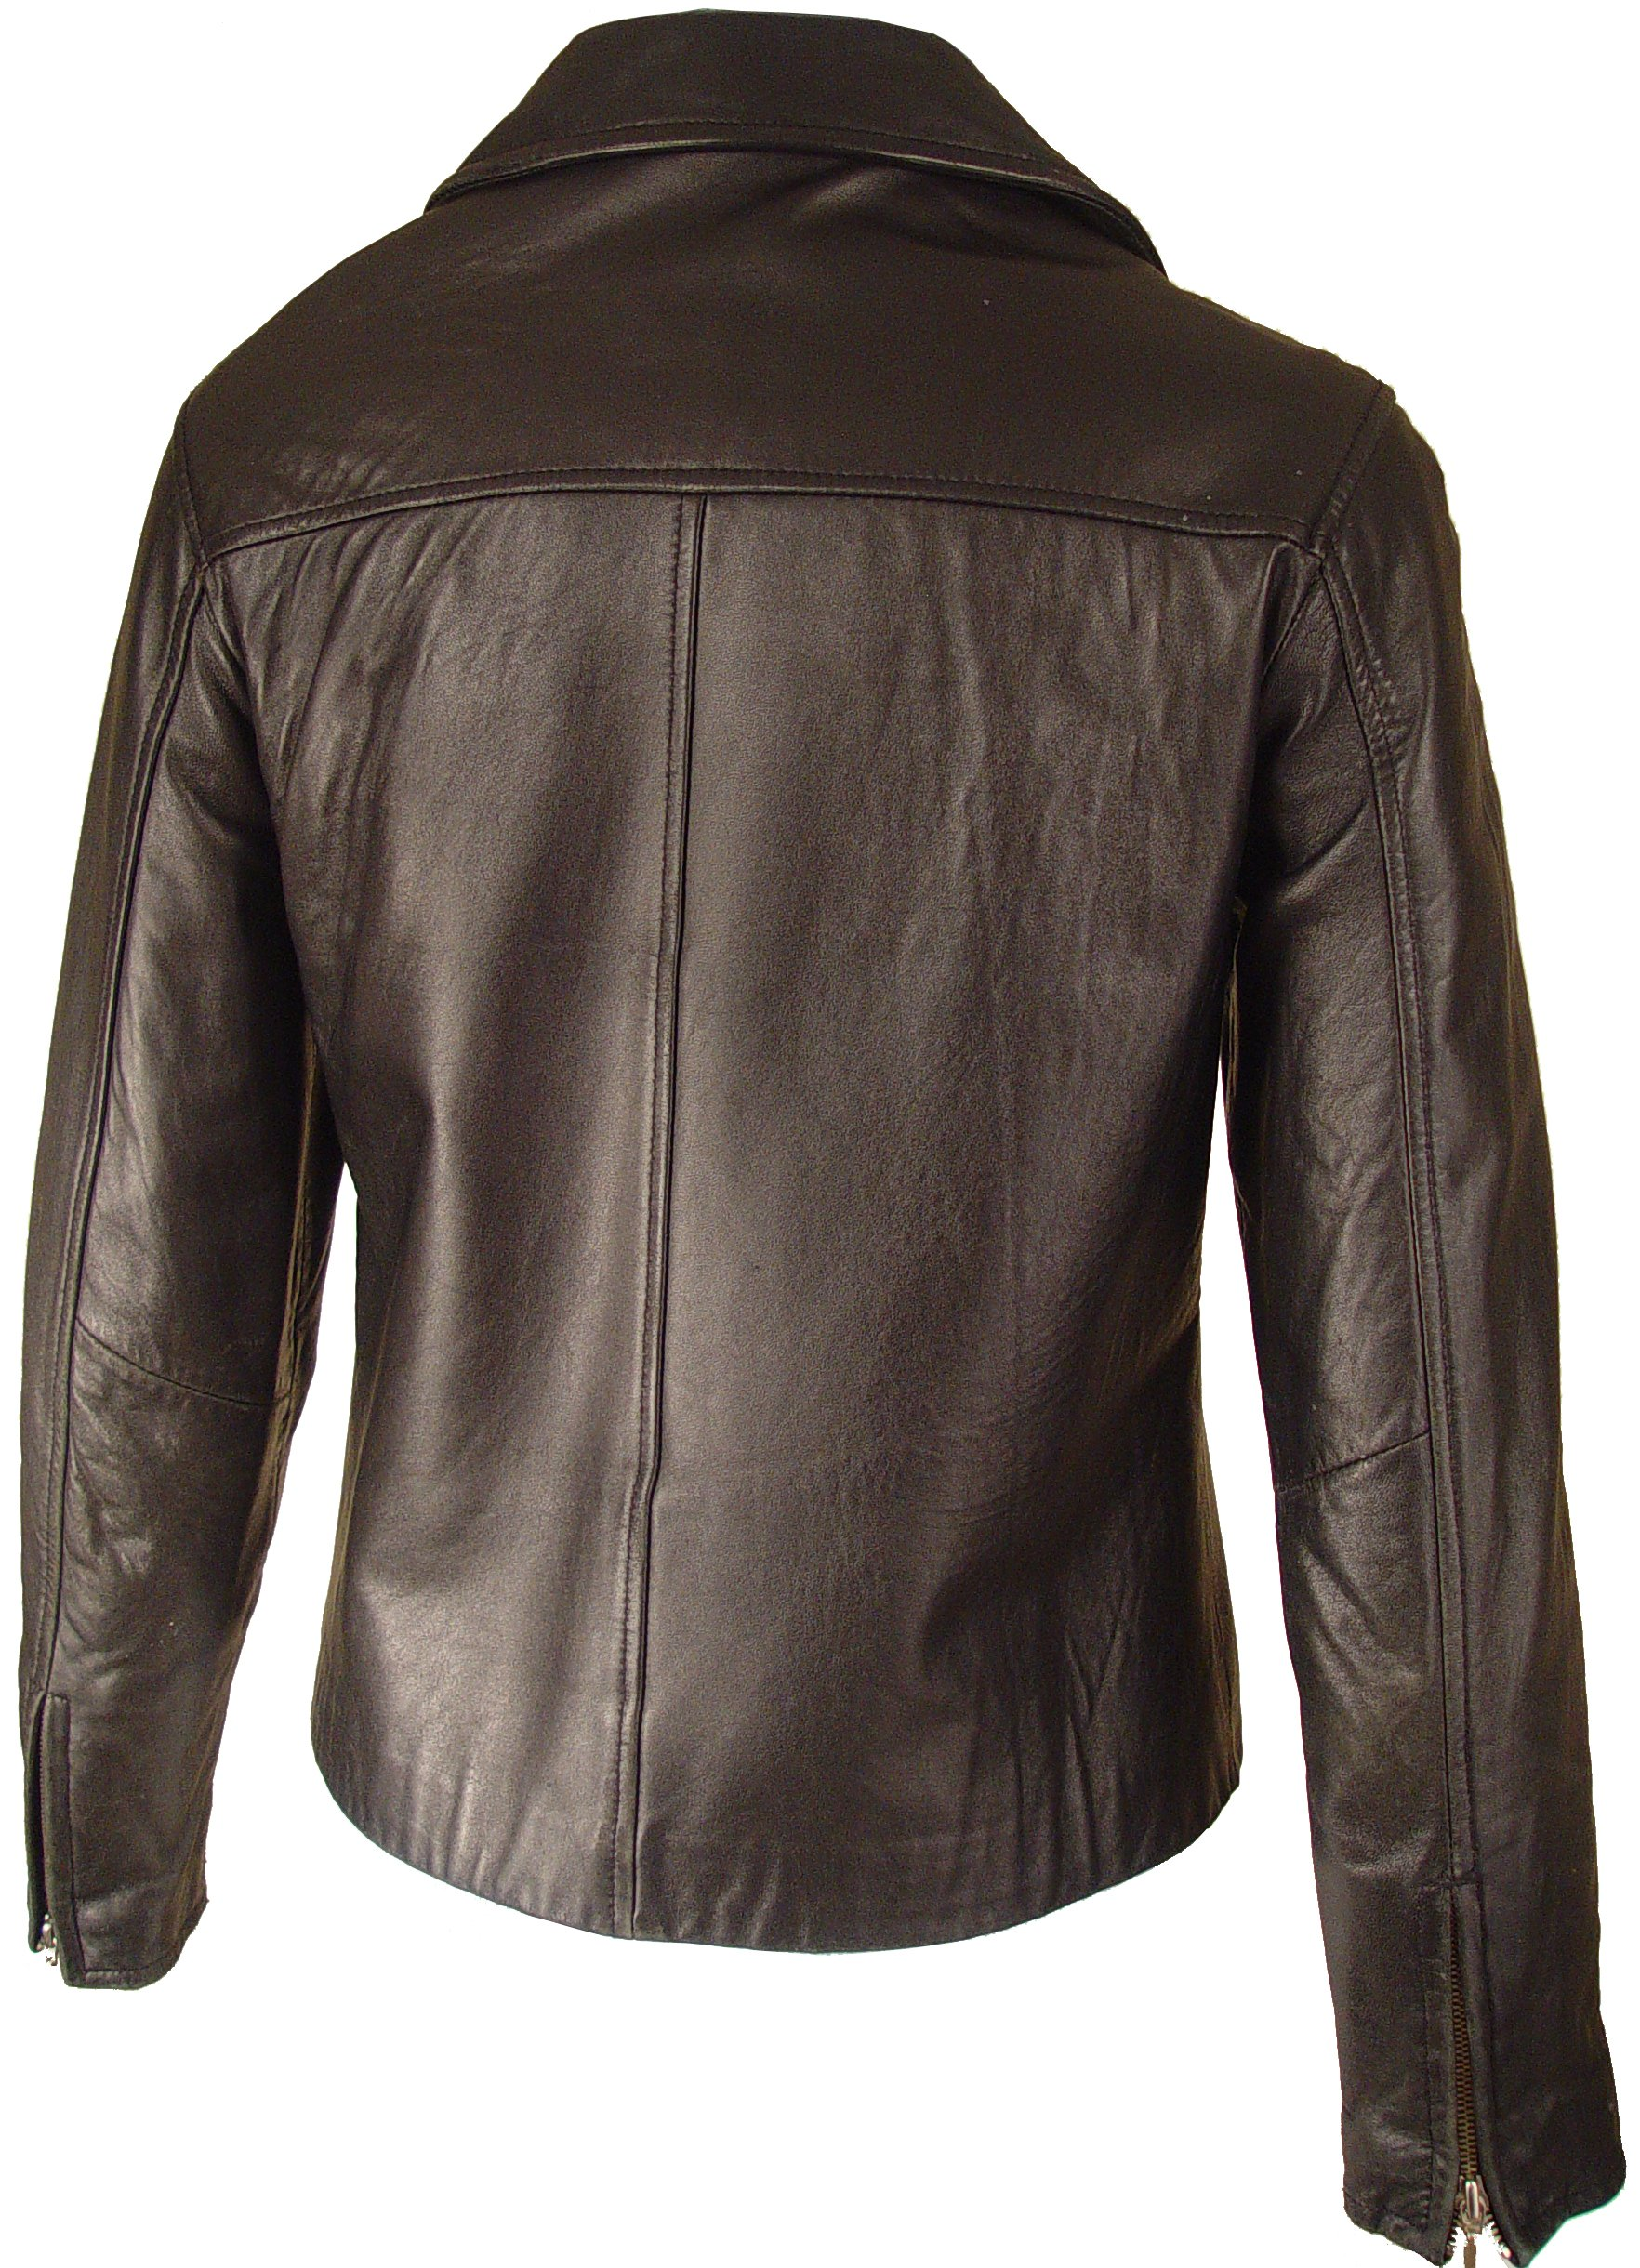 Paccilo Women 4016 PETITE & ALL SIZELamb Scuba Leather Jacket by Paccilo (Image #3)